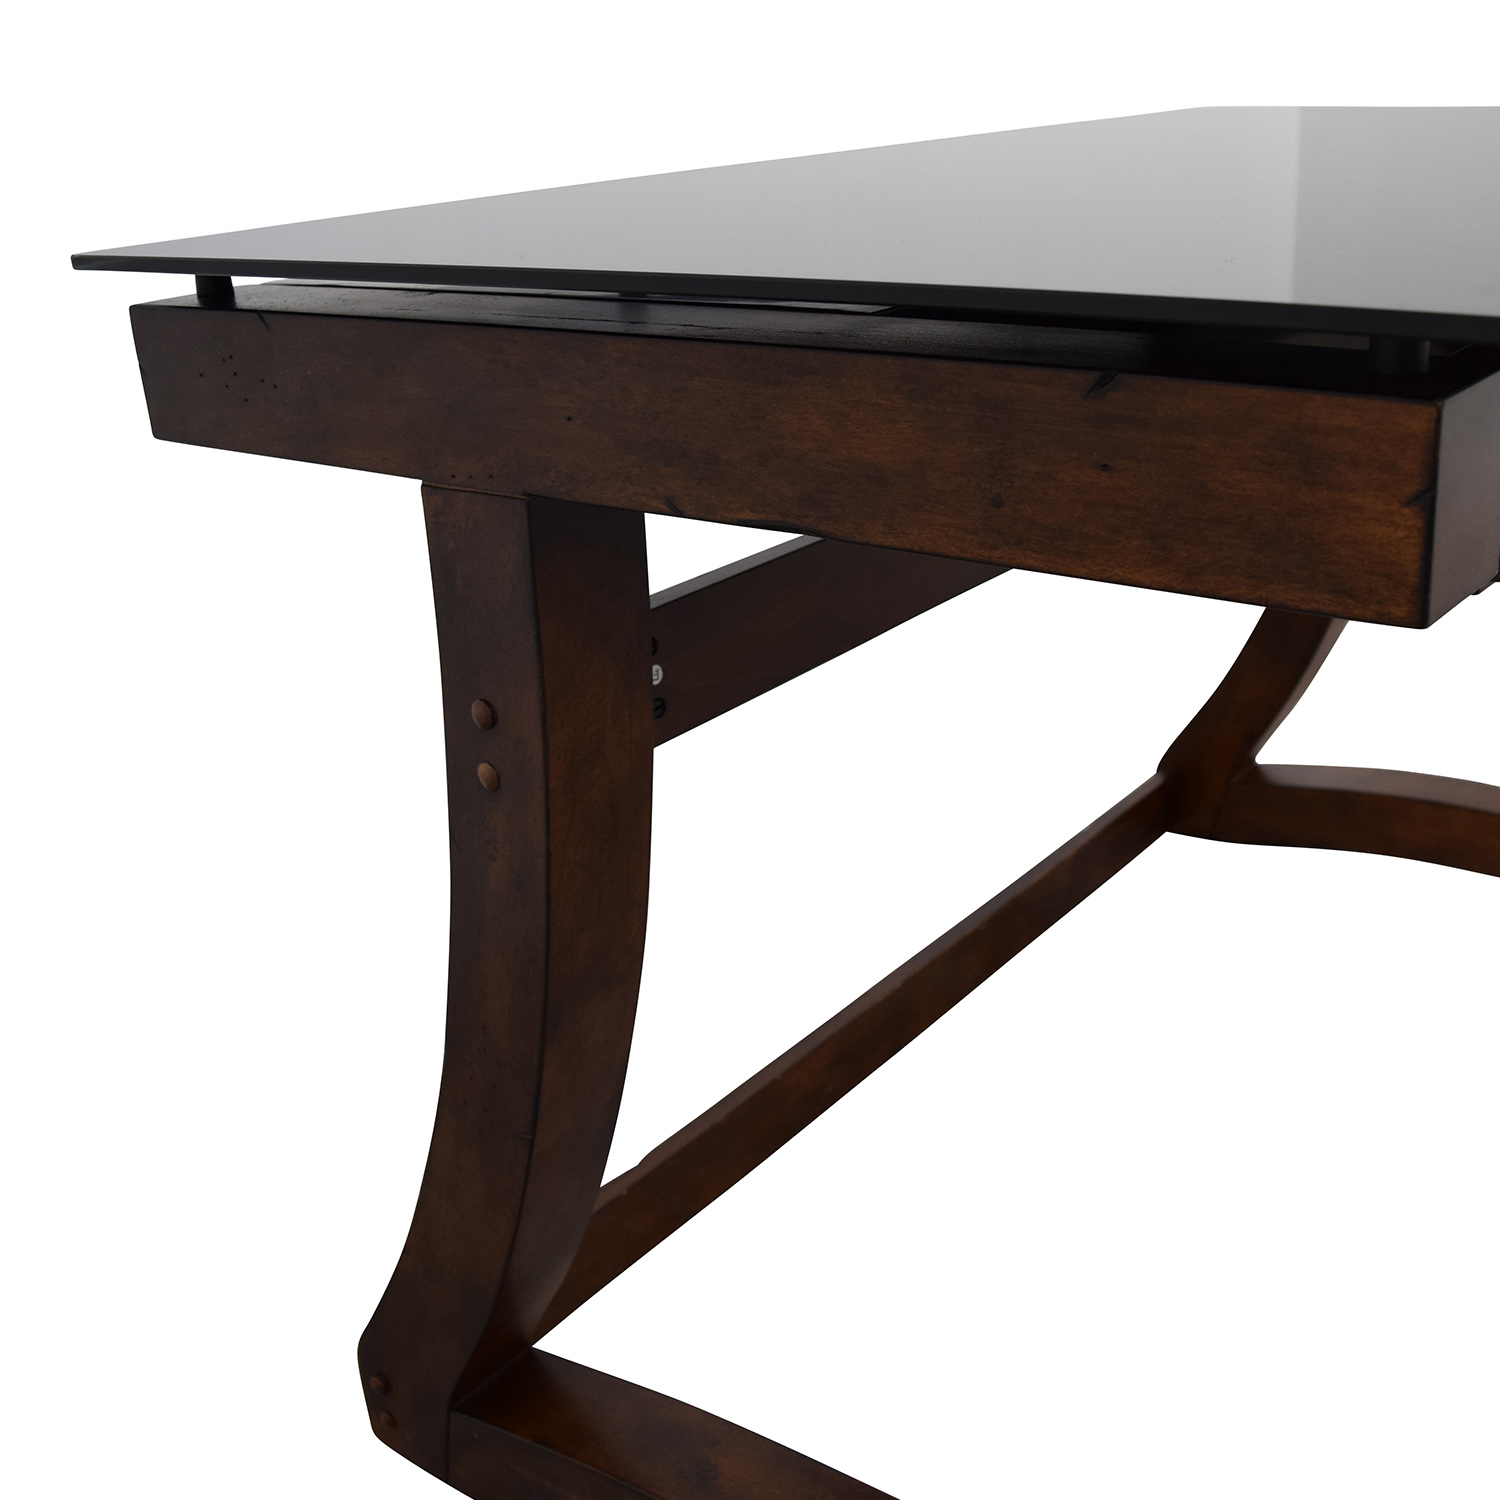 Raymour & Flanigan Raymour & Flanigan Computer Table and Chair used